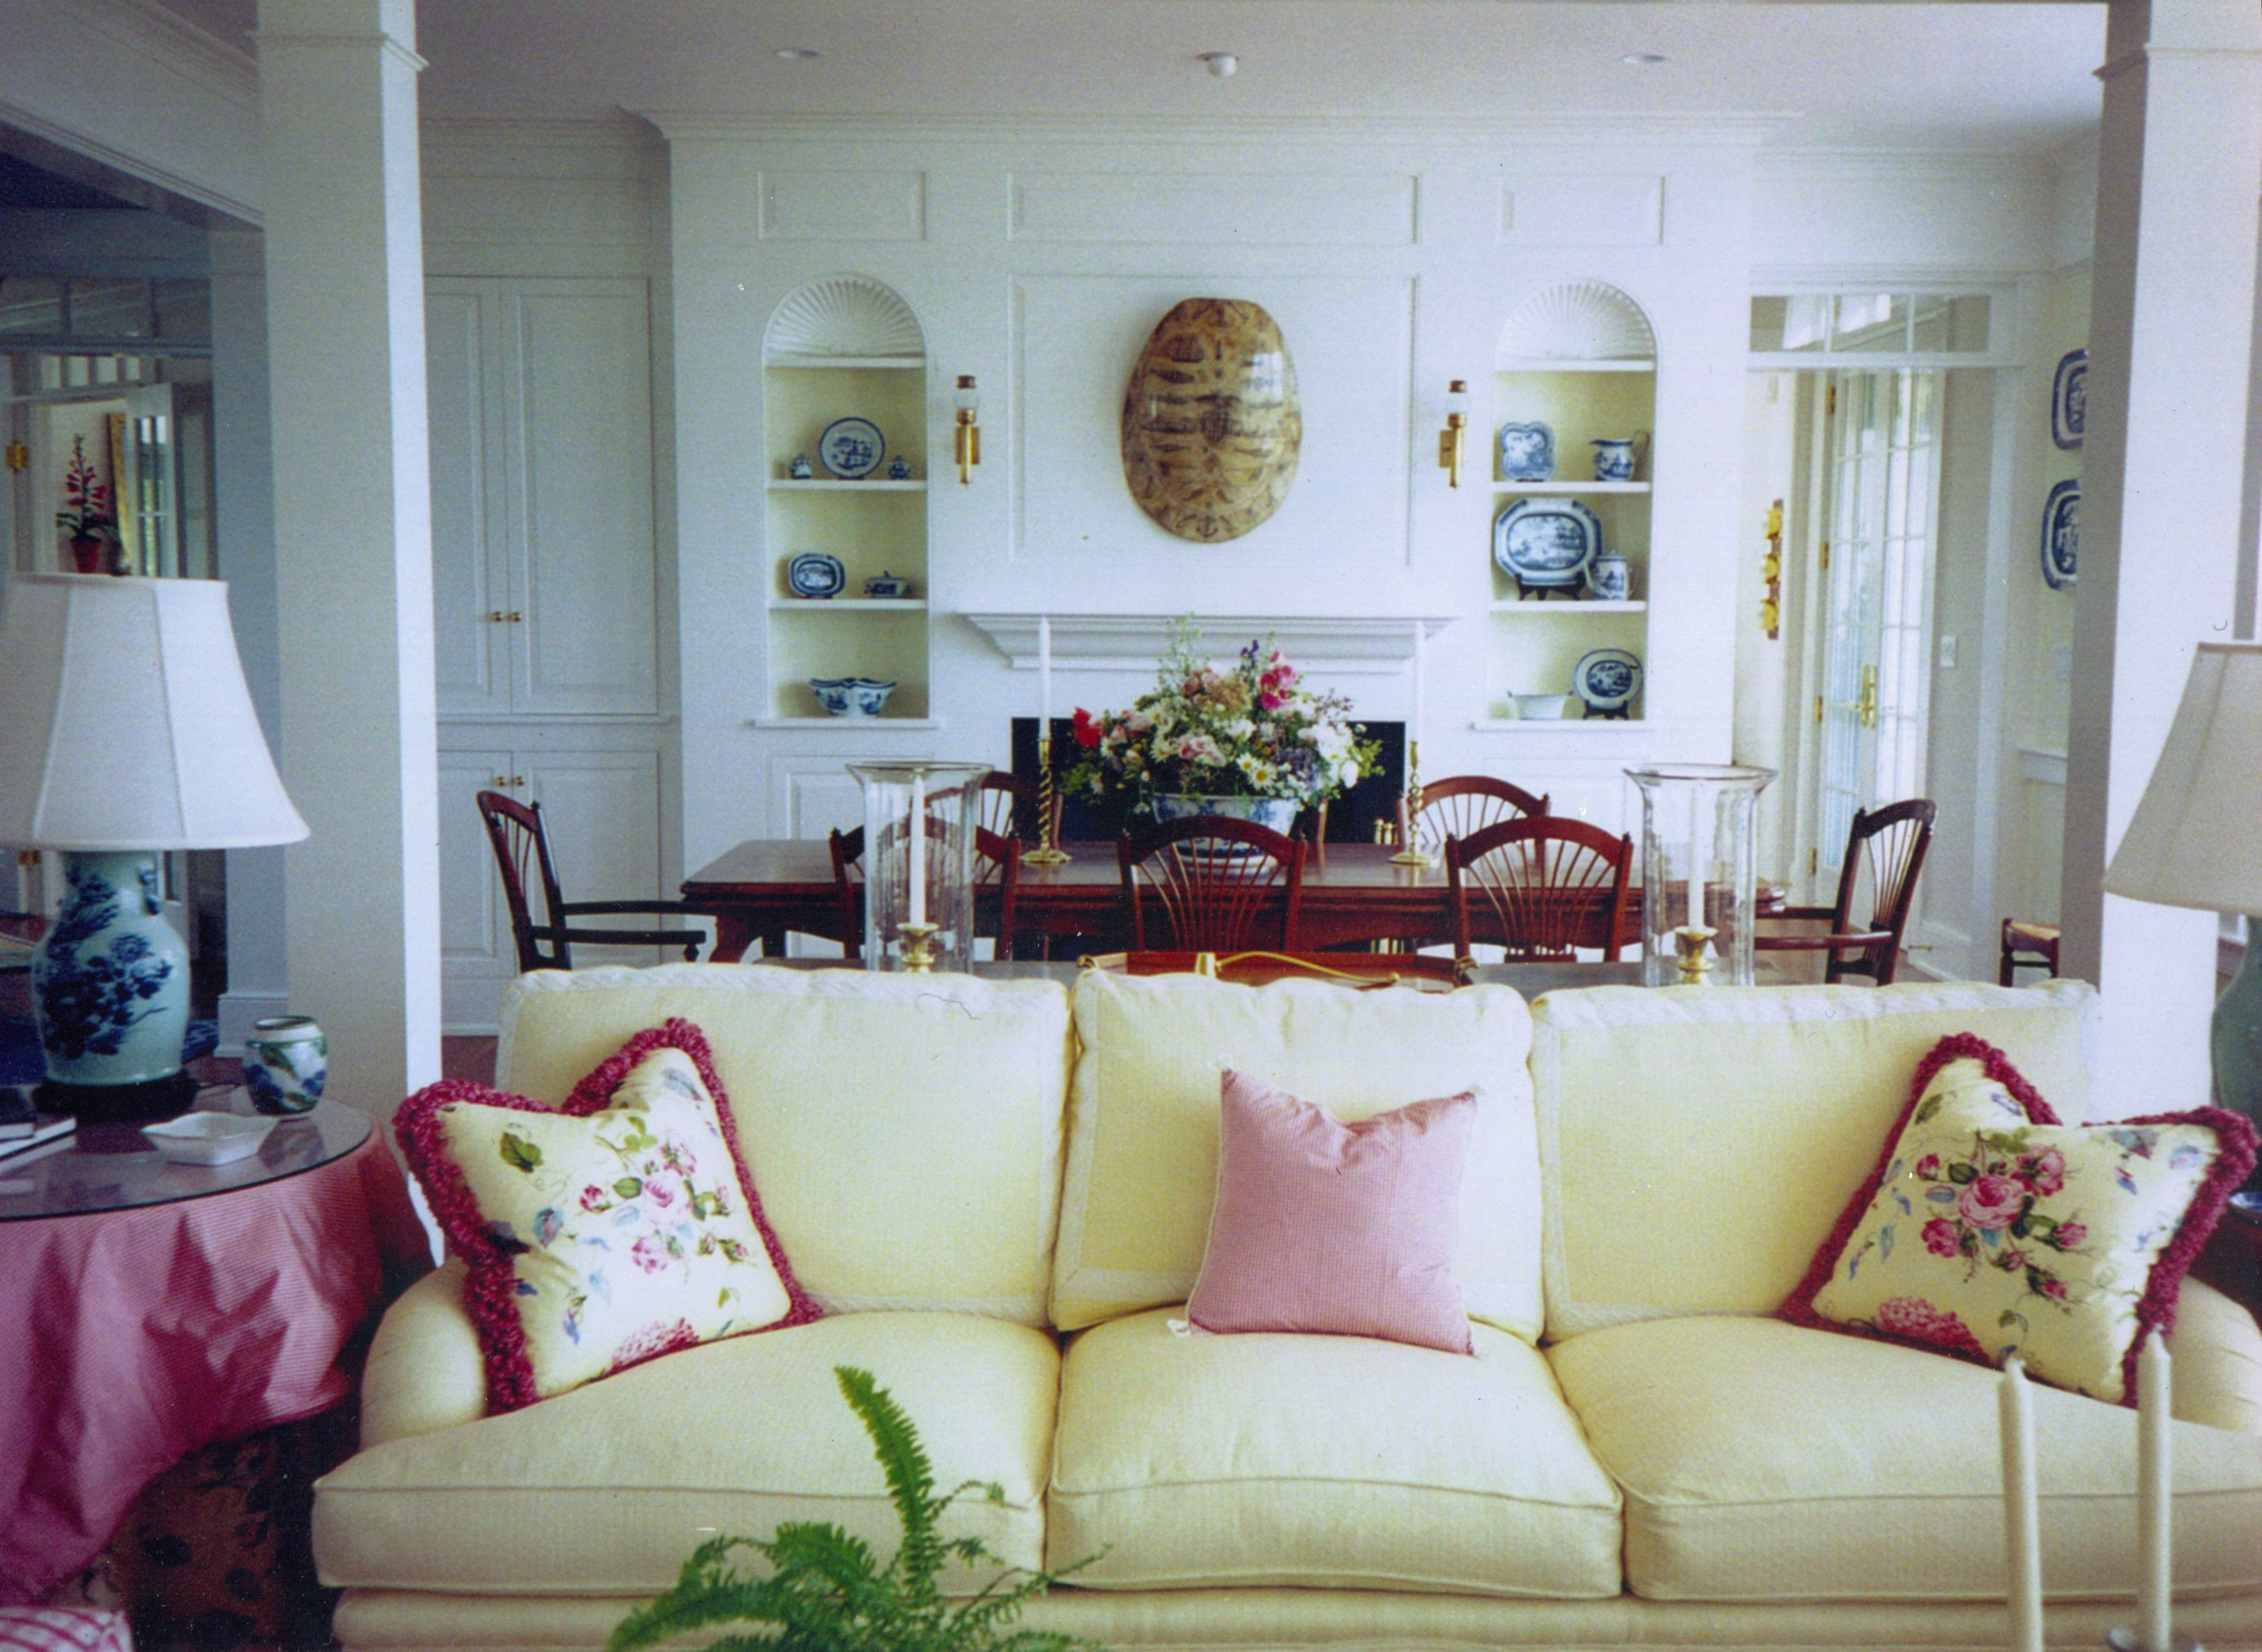 Home interior view point of view interiors llc  nantucket ma  new home design